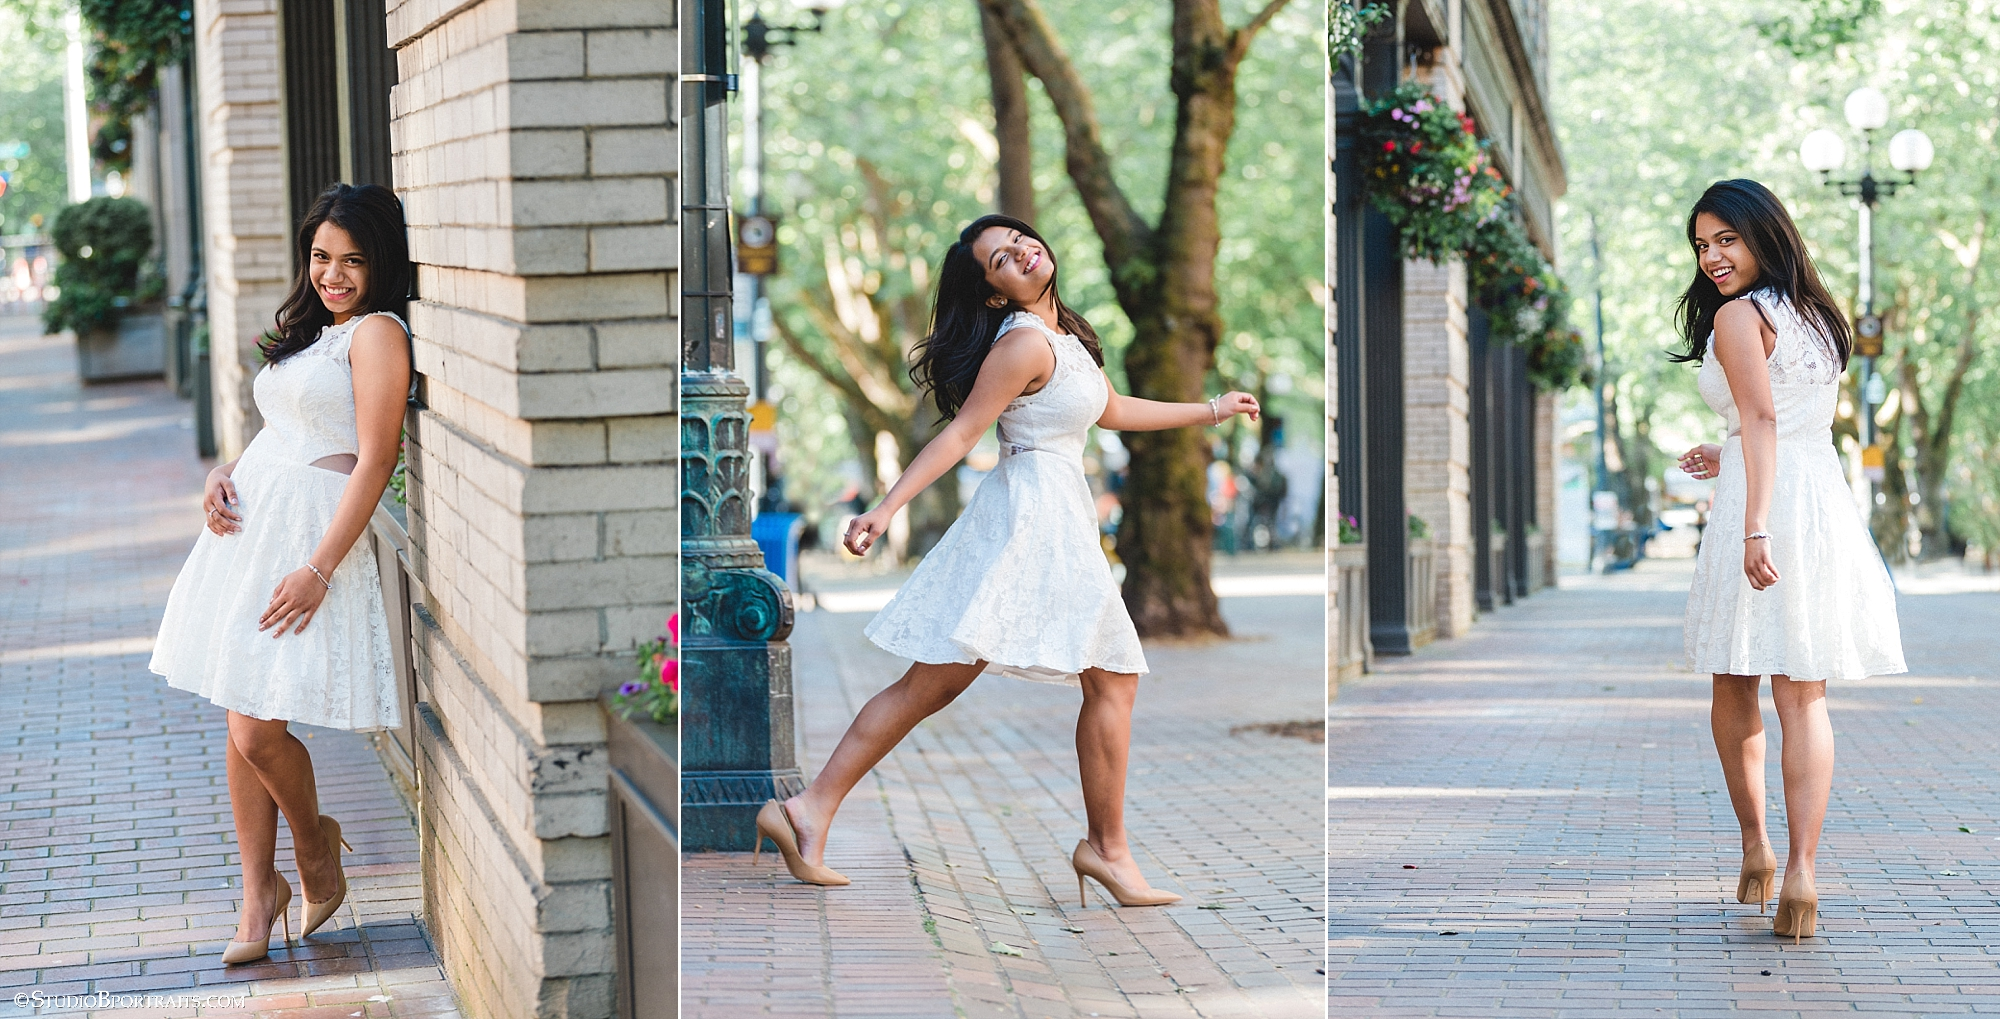 Class of 2019 Kaitlin shows us that above the knee lace is pretty and picture perfect from every angle